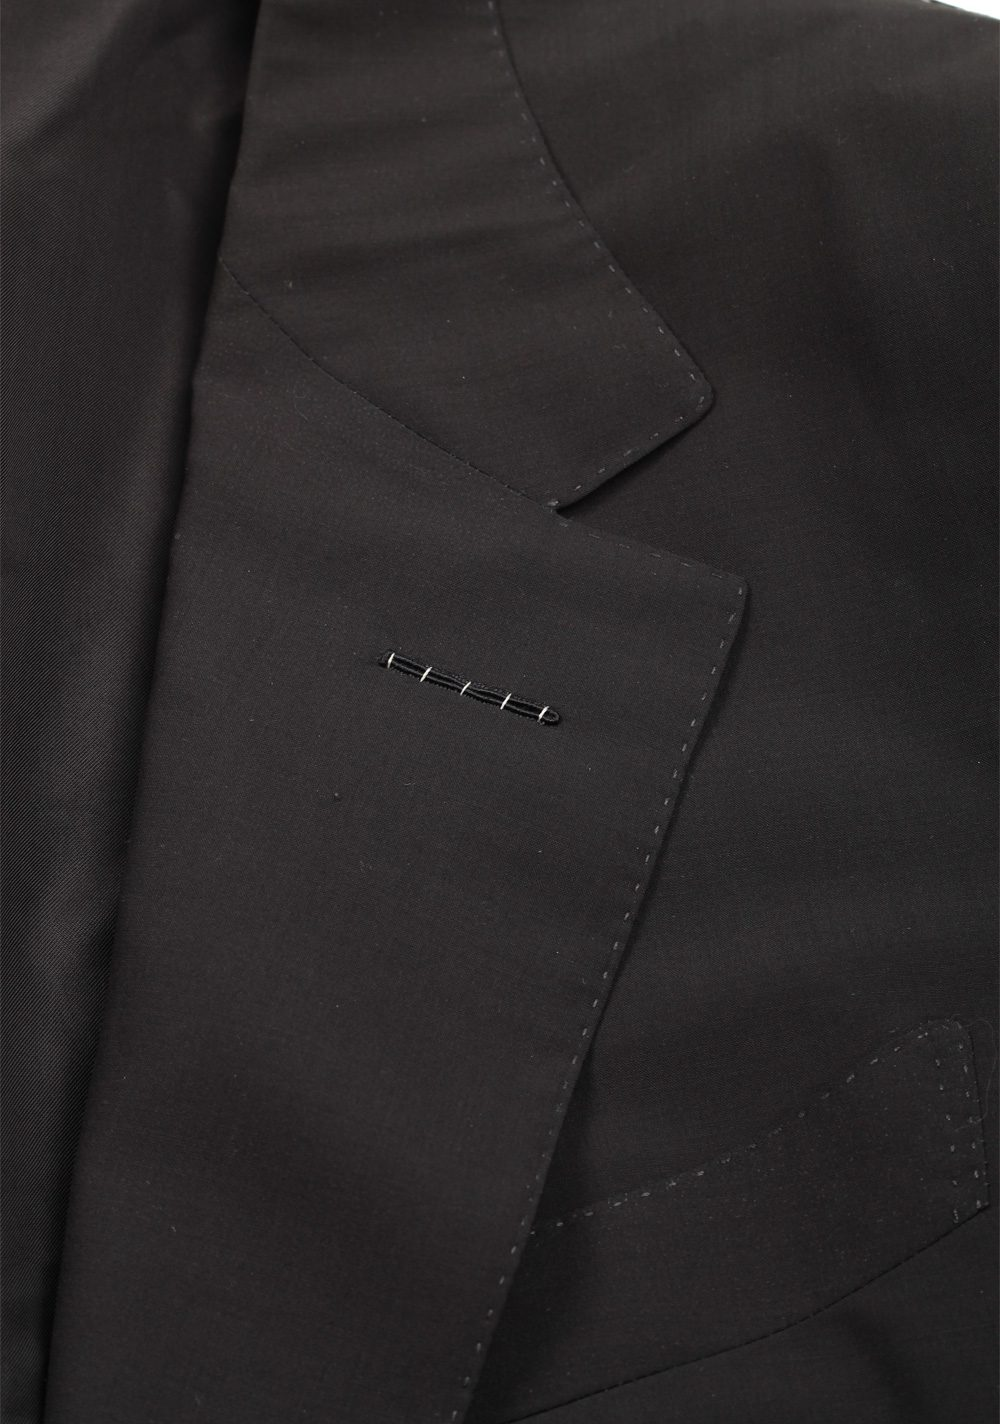 TOM FORD Shelton Black Suit Size 48 / 38R U.S. In Wool Blend | Costume Limité